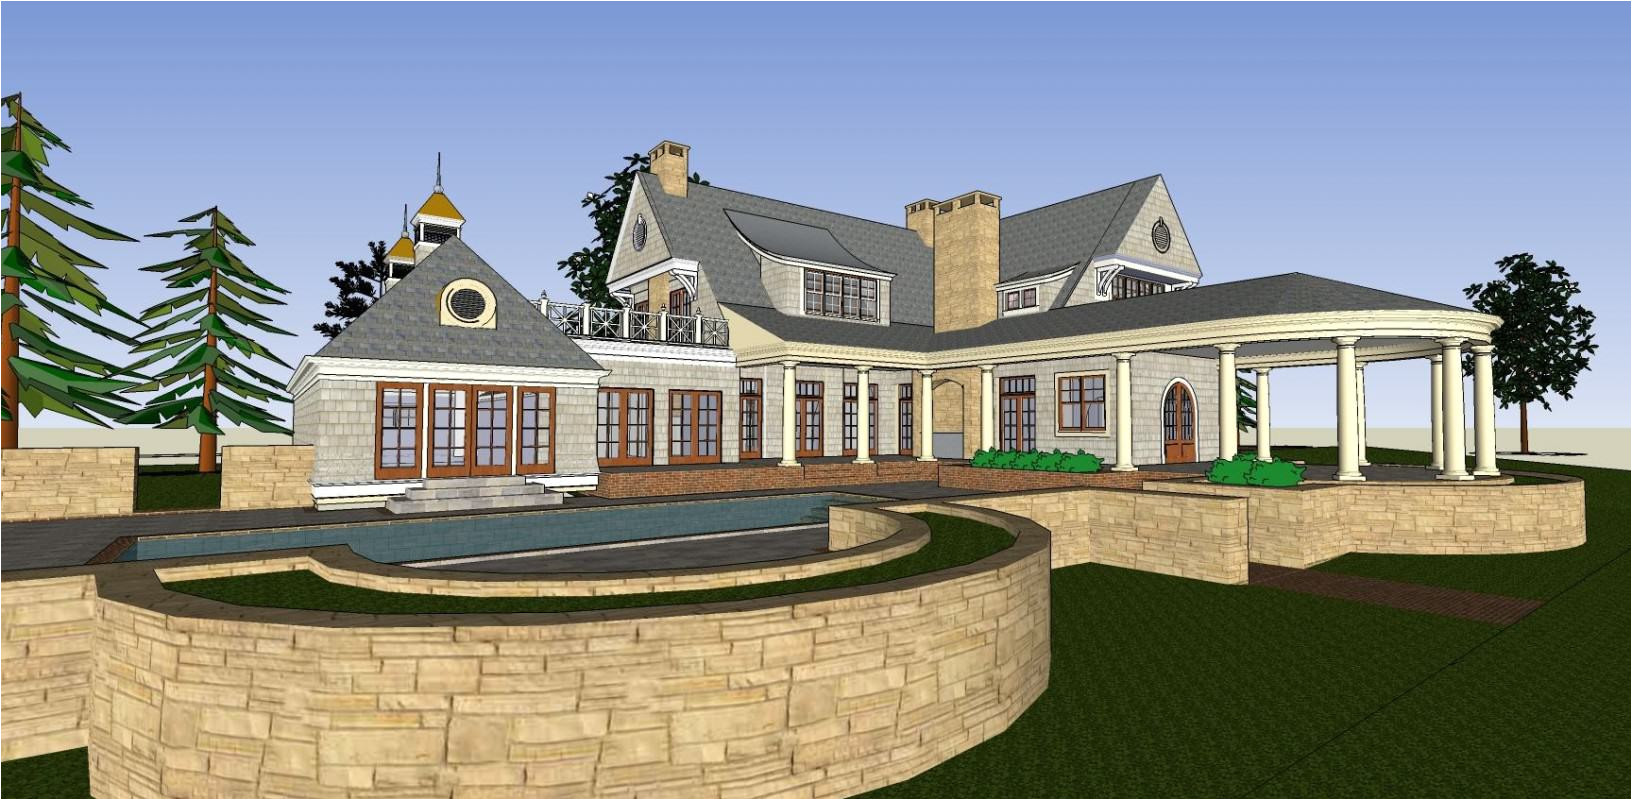 superb new old house plans 8 new old house architect house plans traditional home 3d model